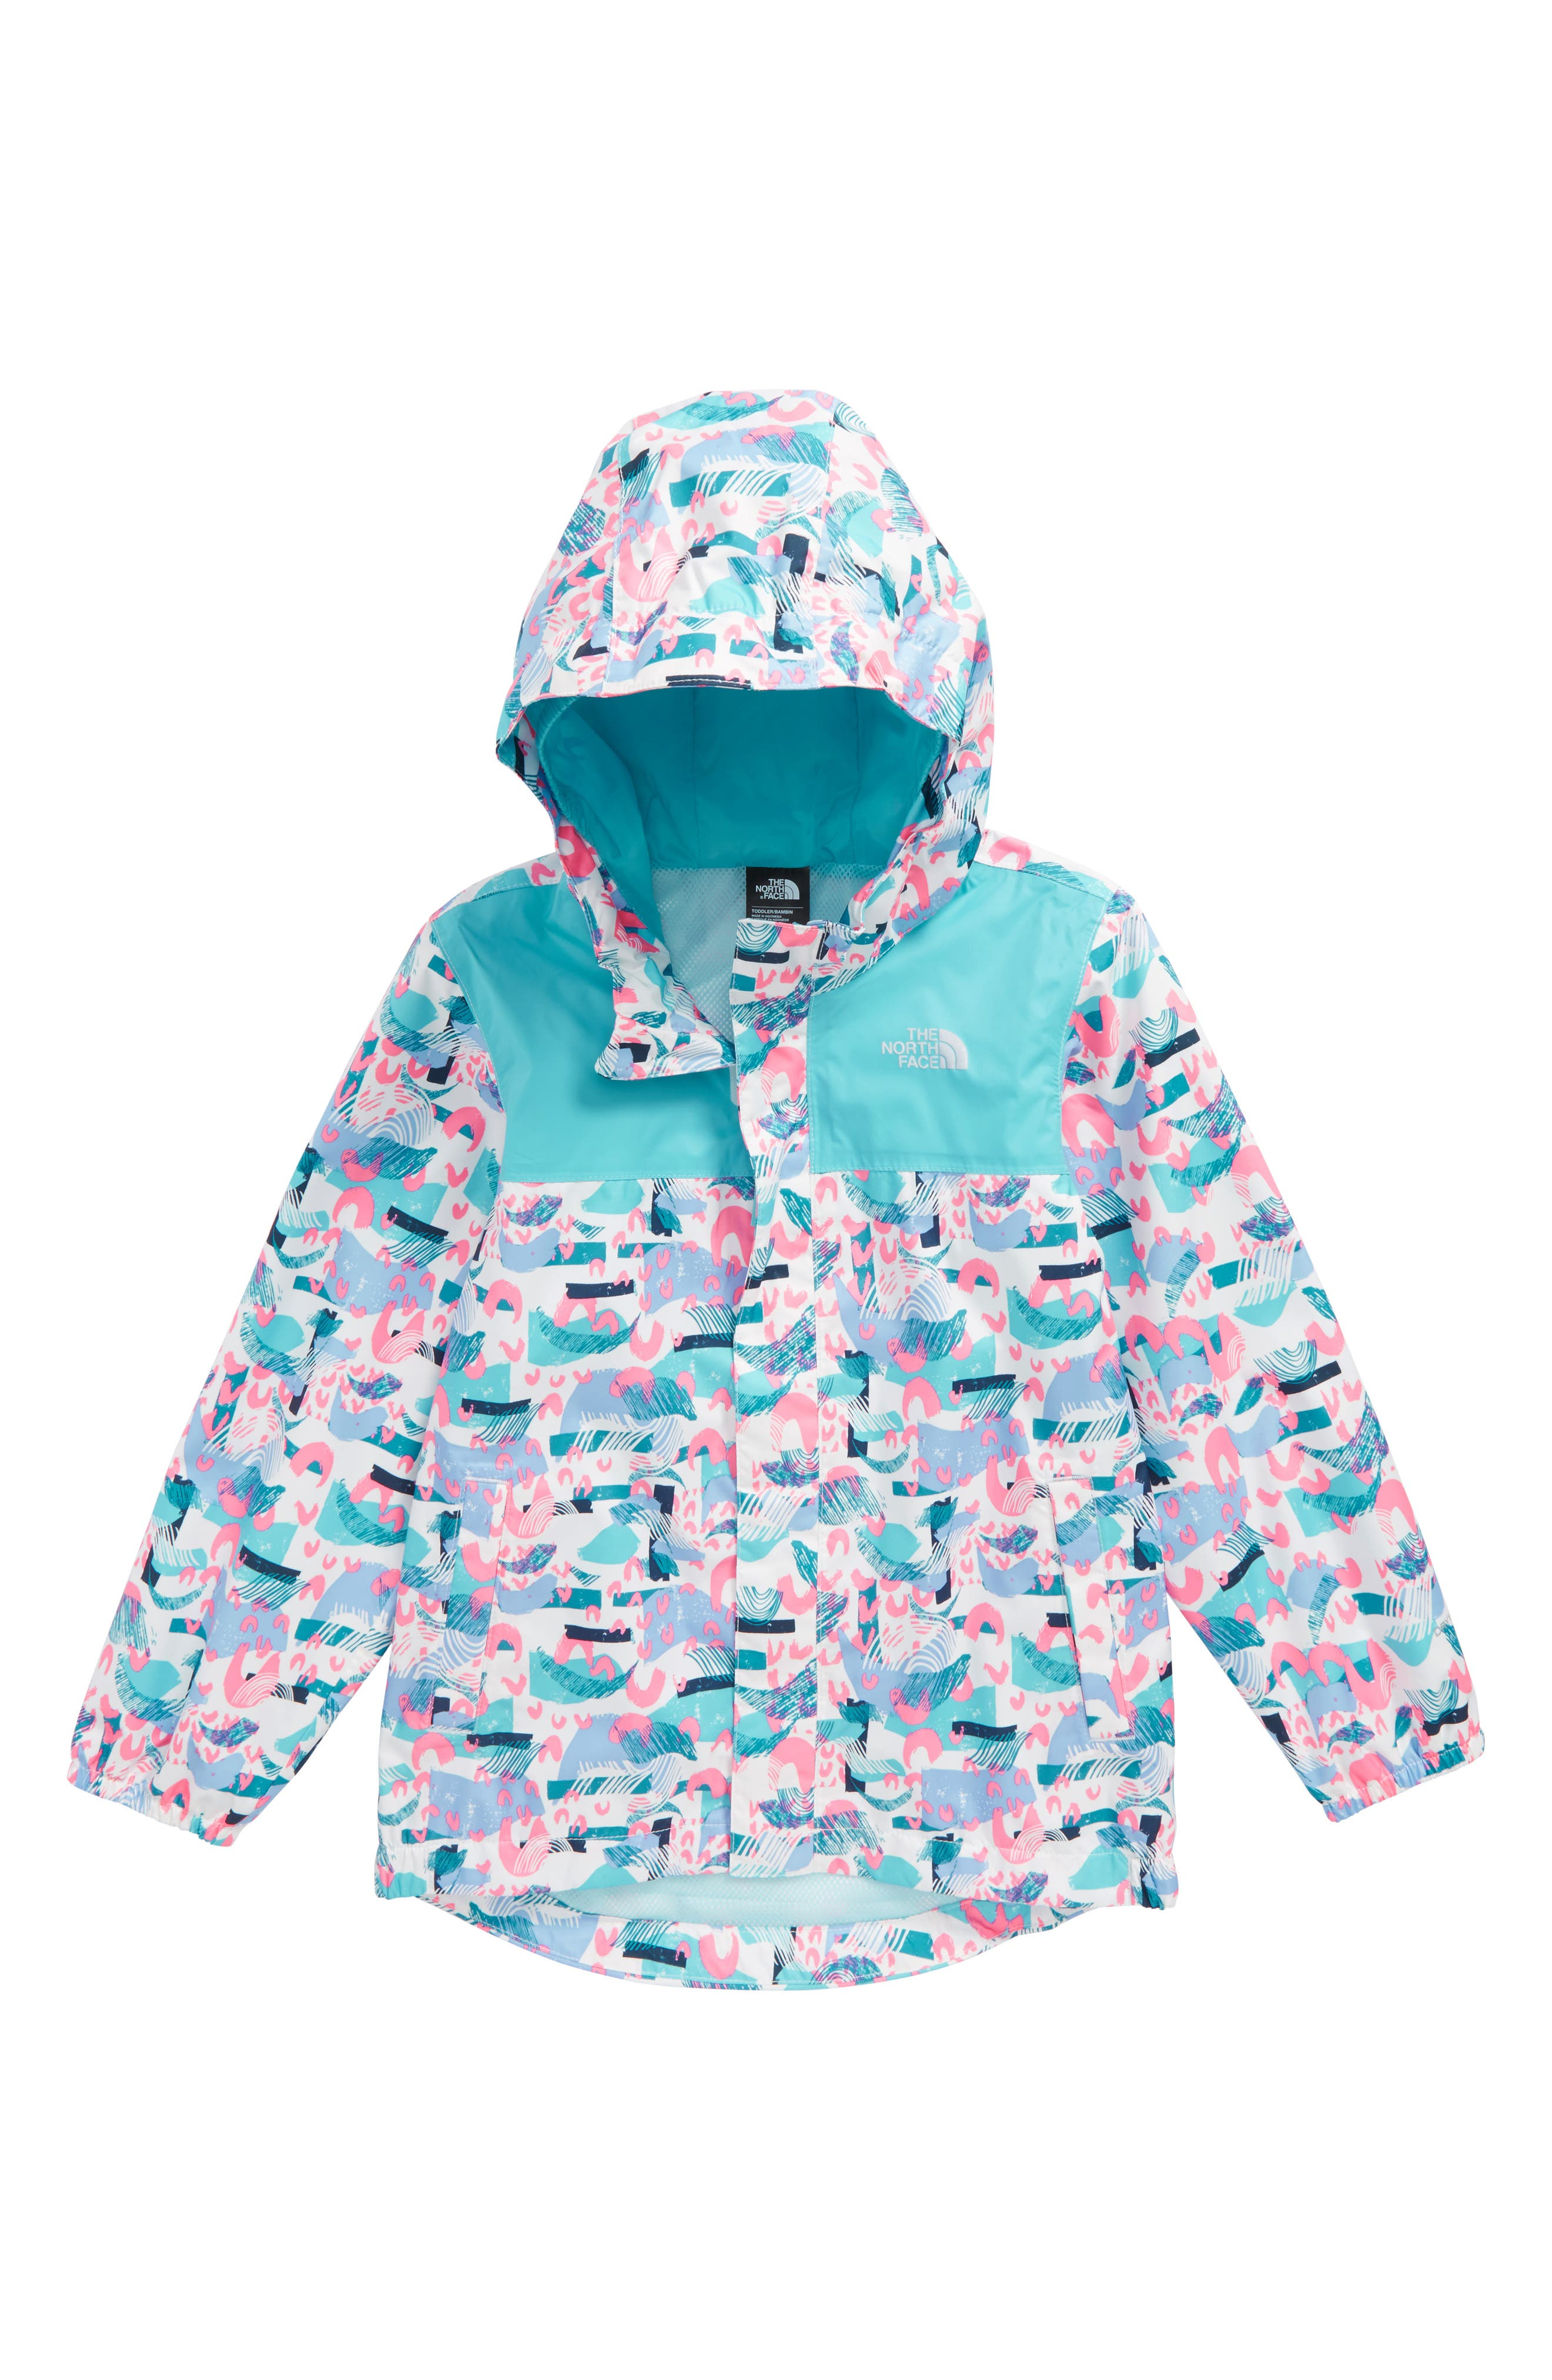 Tailout Hooded Rain Jacket,                             Main thumbnail 1, color,                             White Rainbow Print